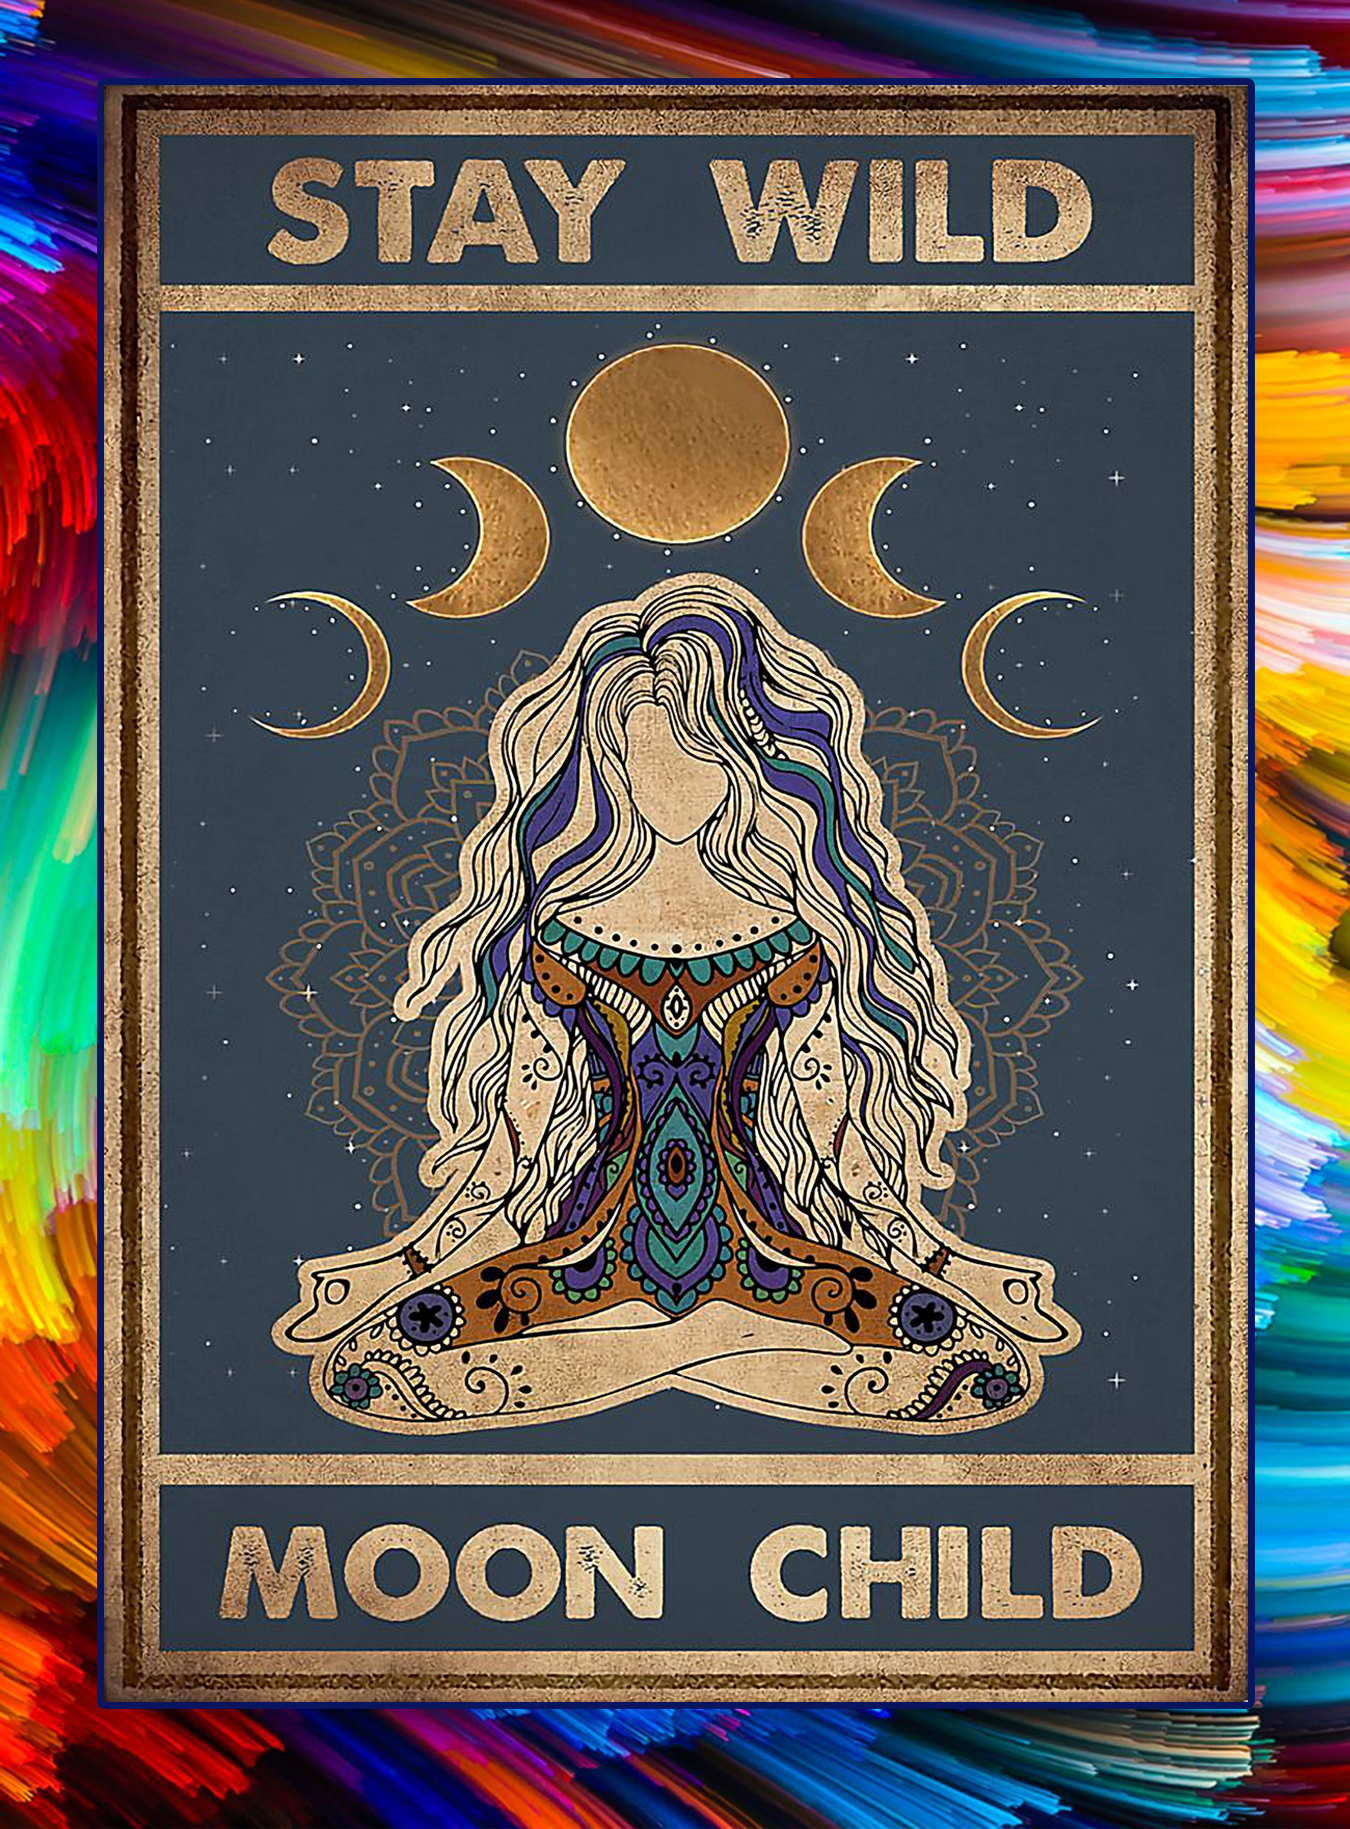 Stay wild moon child poster - A3